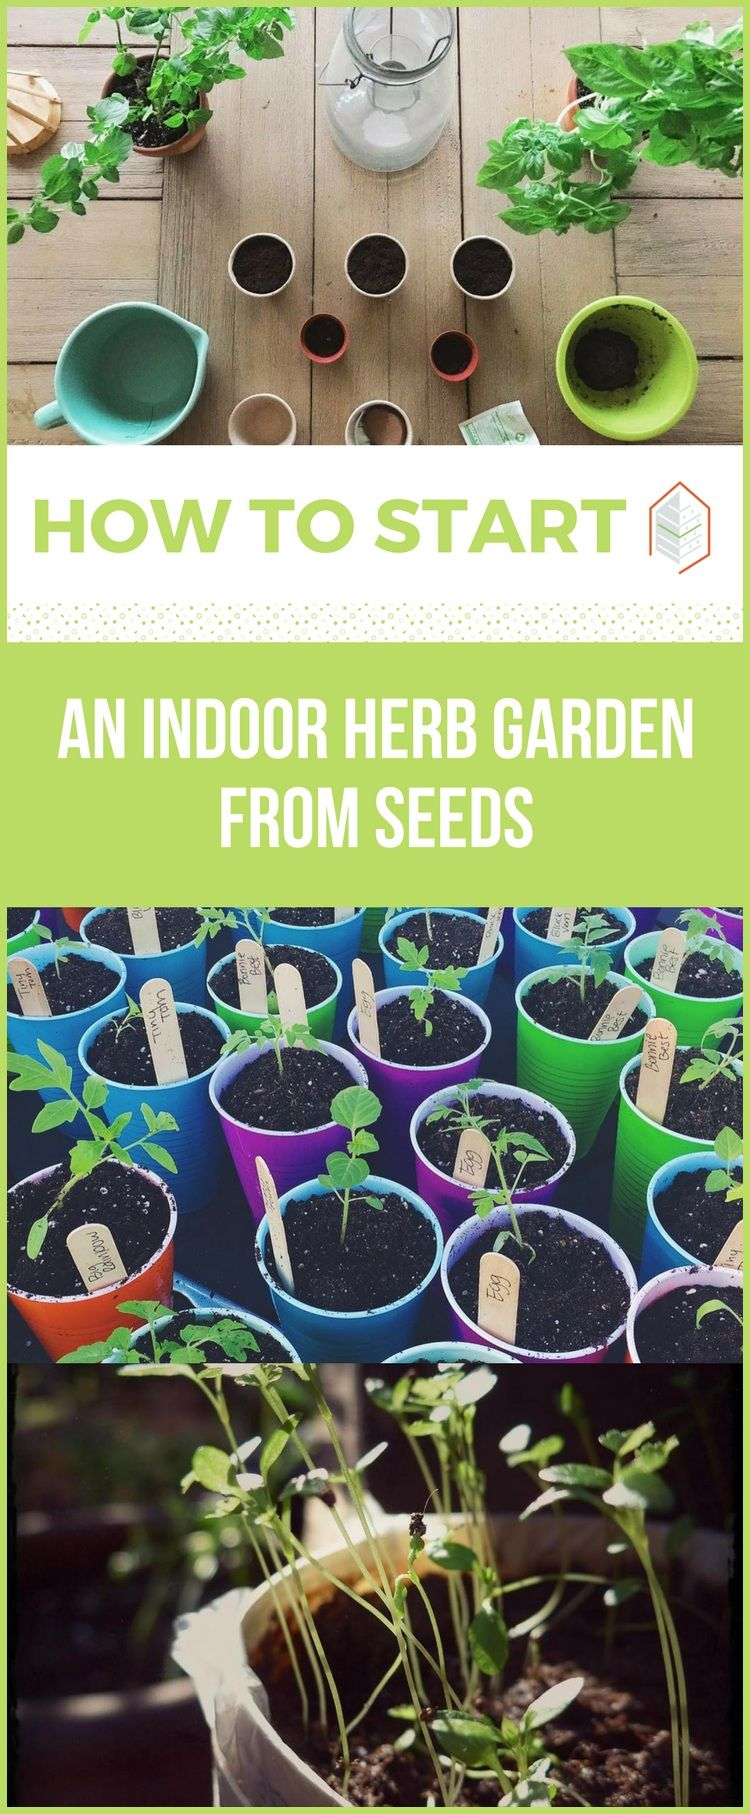 how to start an indoor herb garden from seeds - How To Start An Indoor Herb Garden